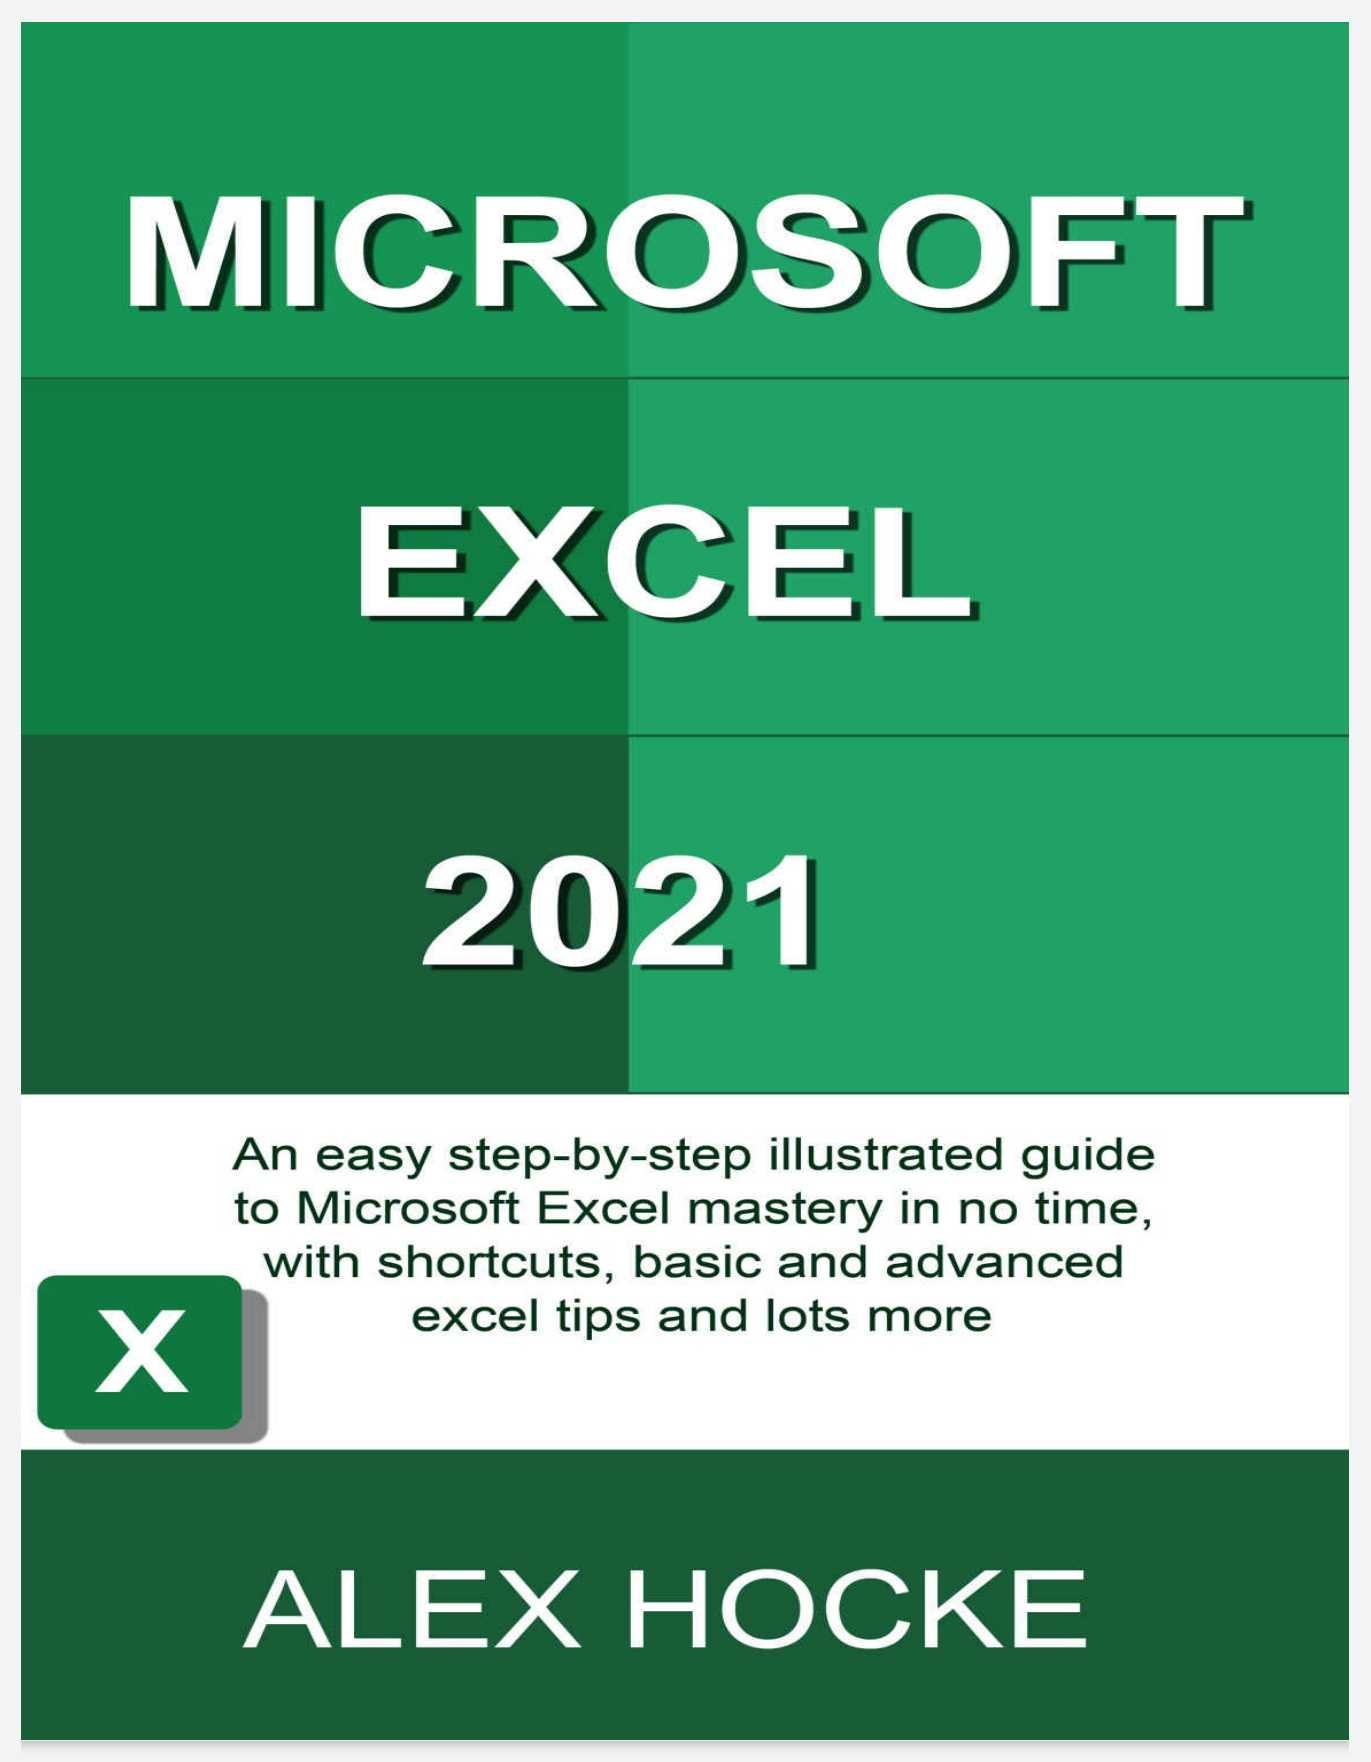 Microsoft Excel 2021: An easy step-by-step illustrated guide to Microsoft Excel mastery in no time, with shortcuts, basic and advanced excel tips and lots more